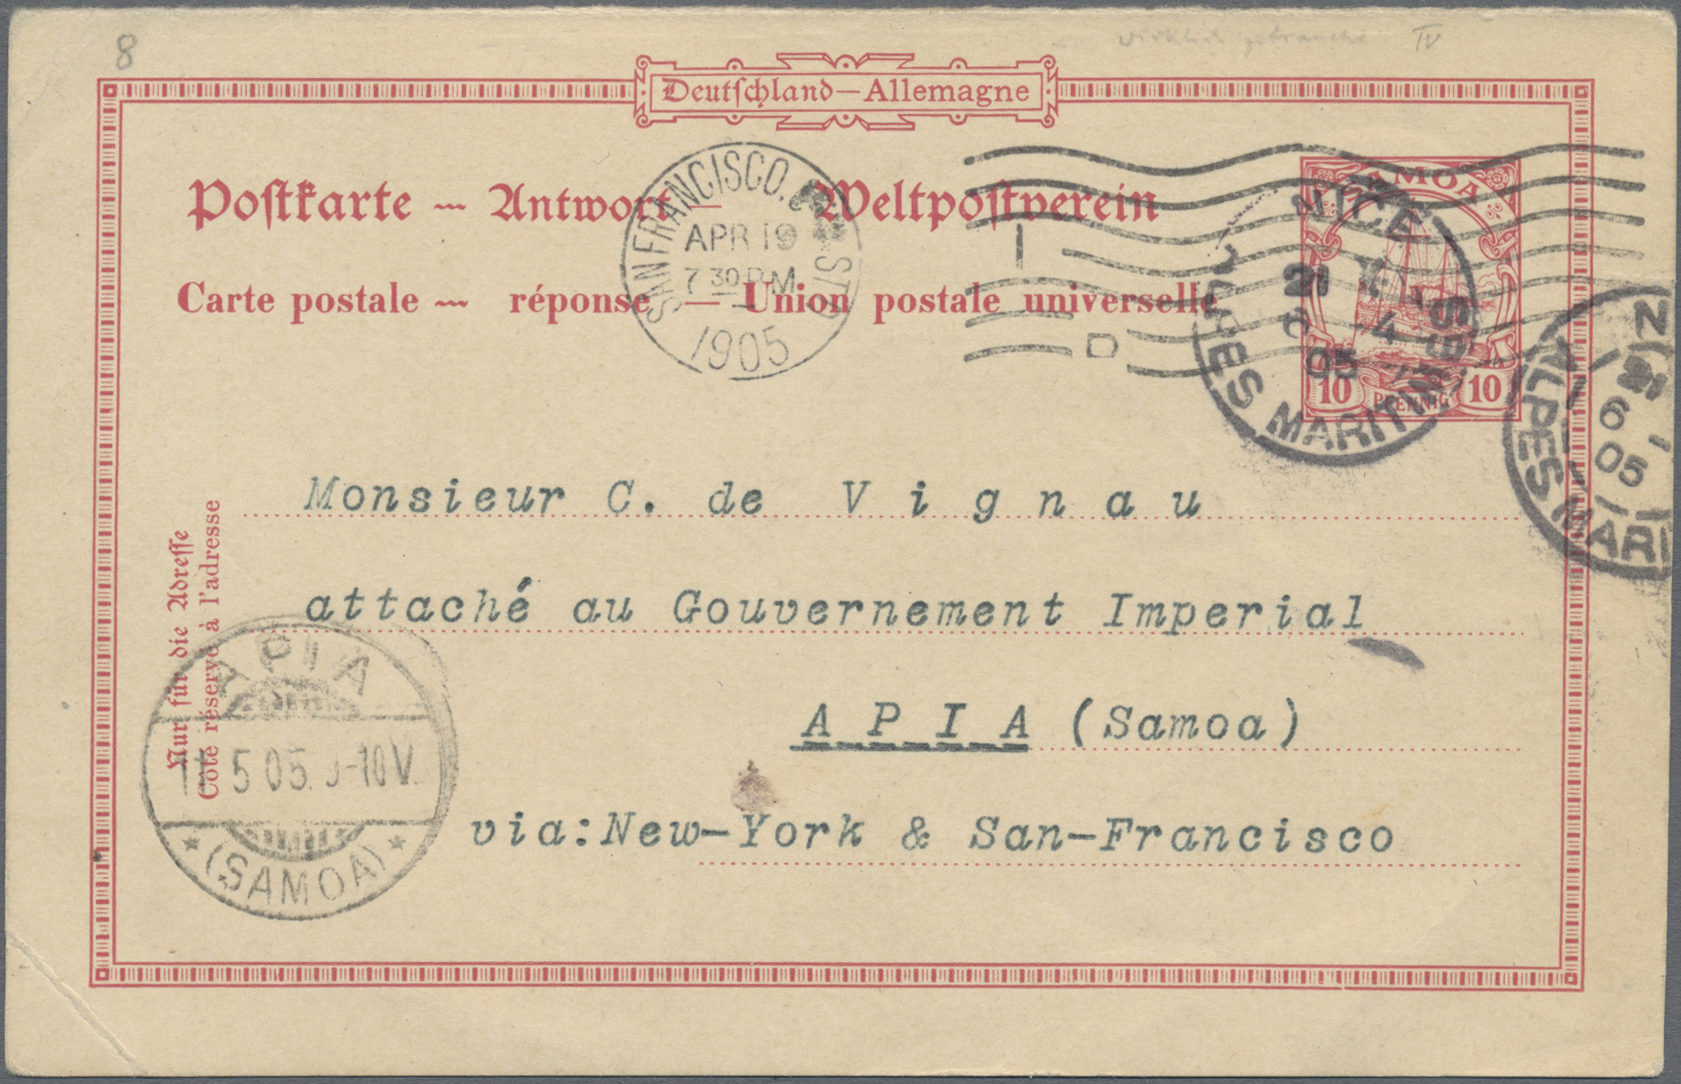 Lot 22887 - Deutsche Kolonien - Samoa - Ganzsachen  -  Auktionshaus Christoph Gärtner GmbH & Co. KG Sale #44 Germany, Picture Post cards